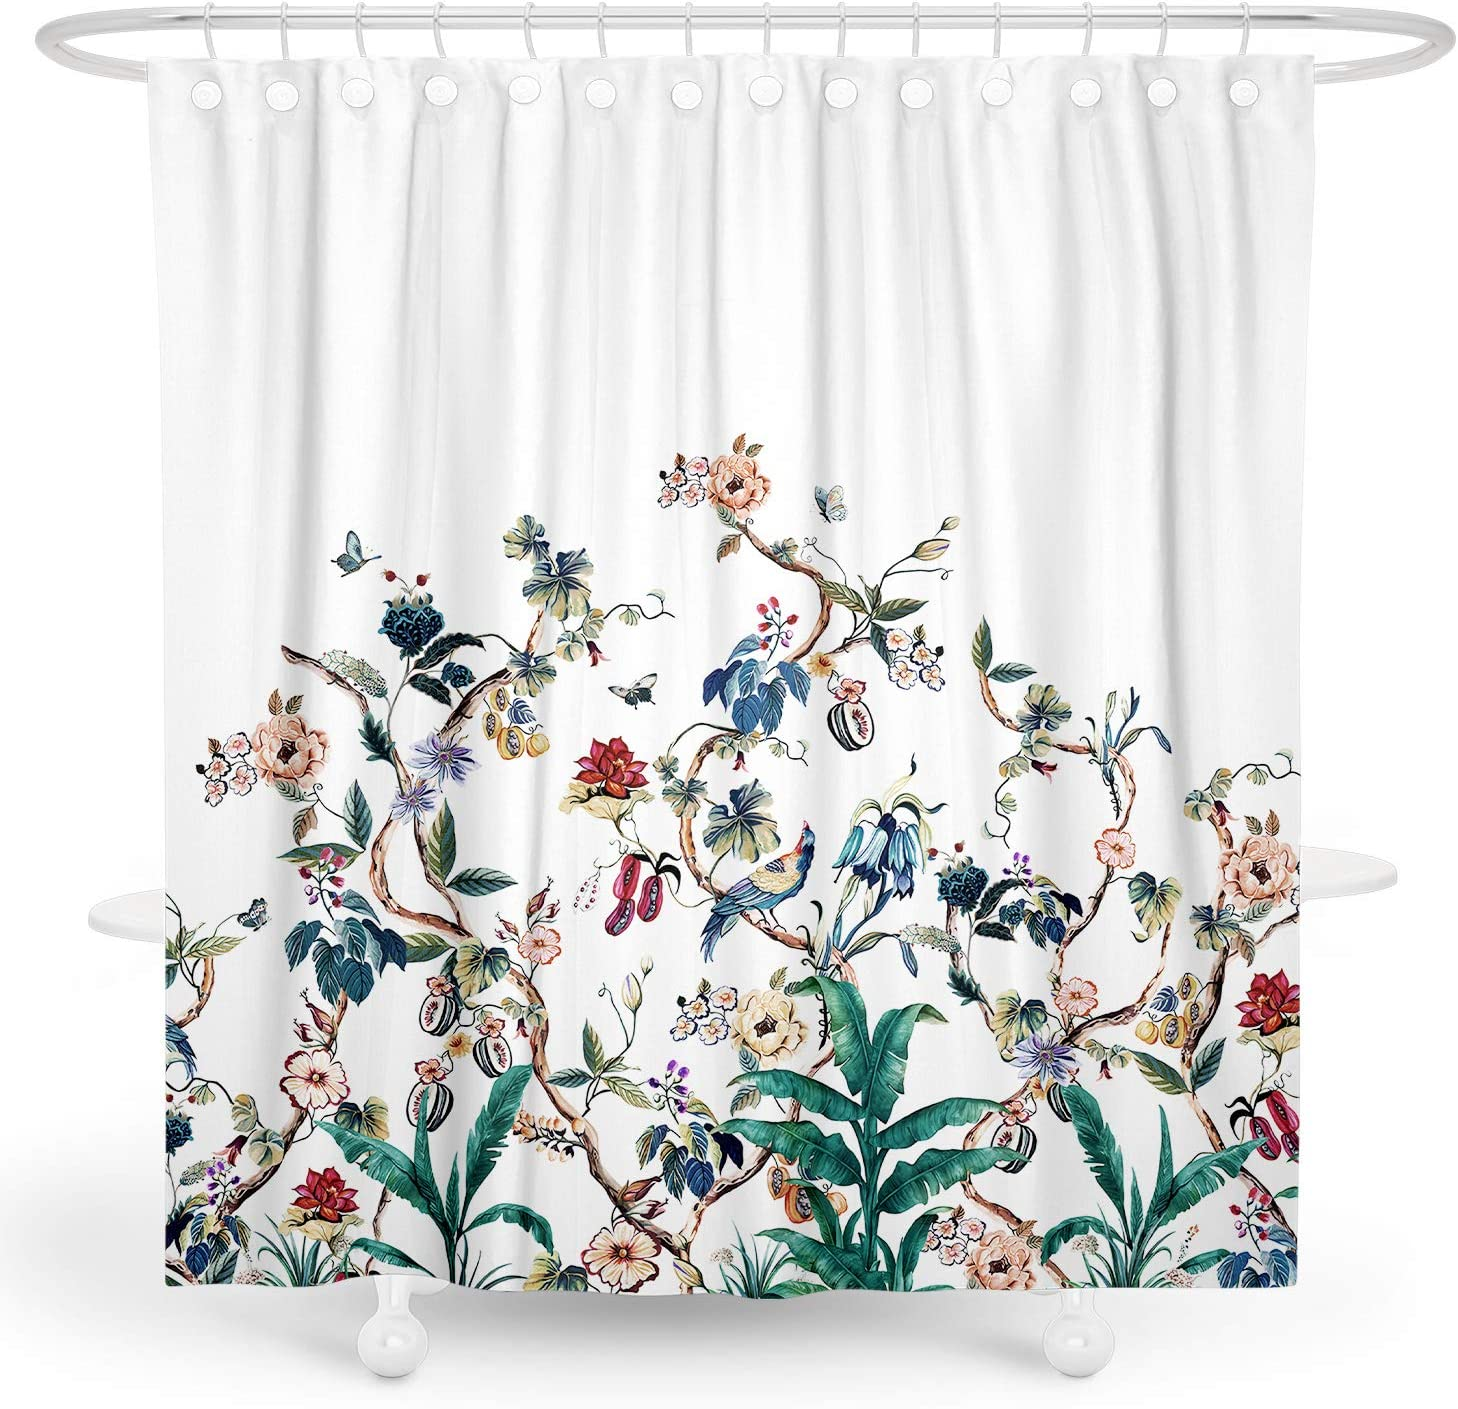 BARGHE Floral Shower Curtain Green Plant Shower Curtain Leaf Bird Shower Curtain Summer Botanical Tropical Shower Curtain Spring Flower Shower Curtain Polyester Waterproof Shower Curtain 72x72 Inch